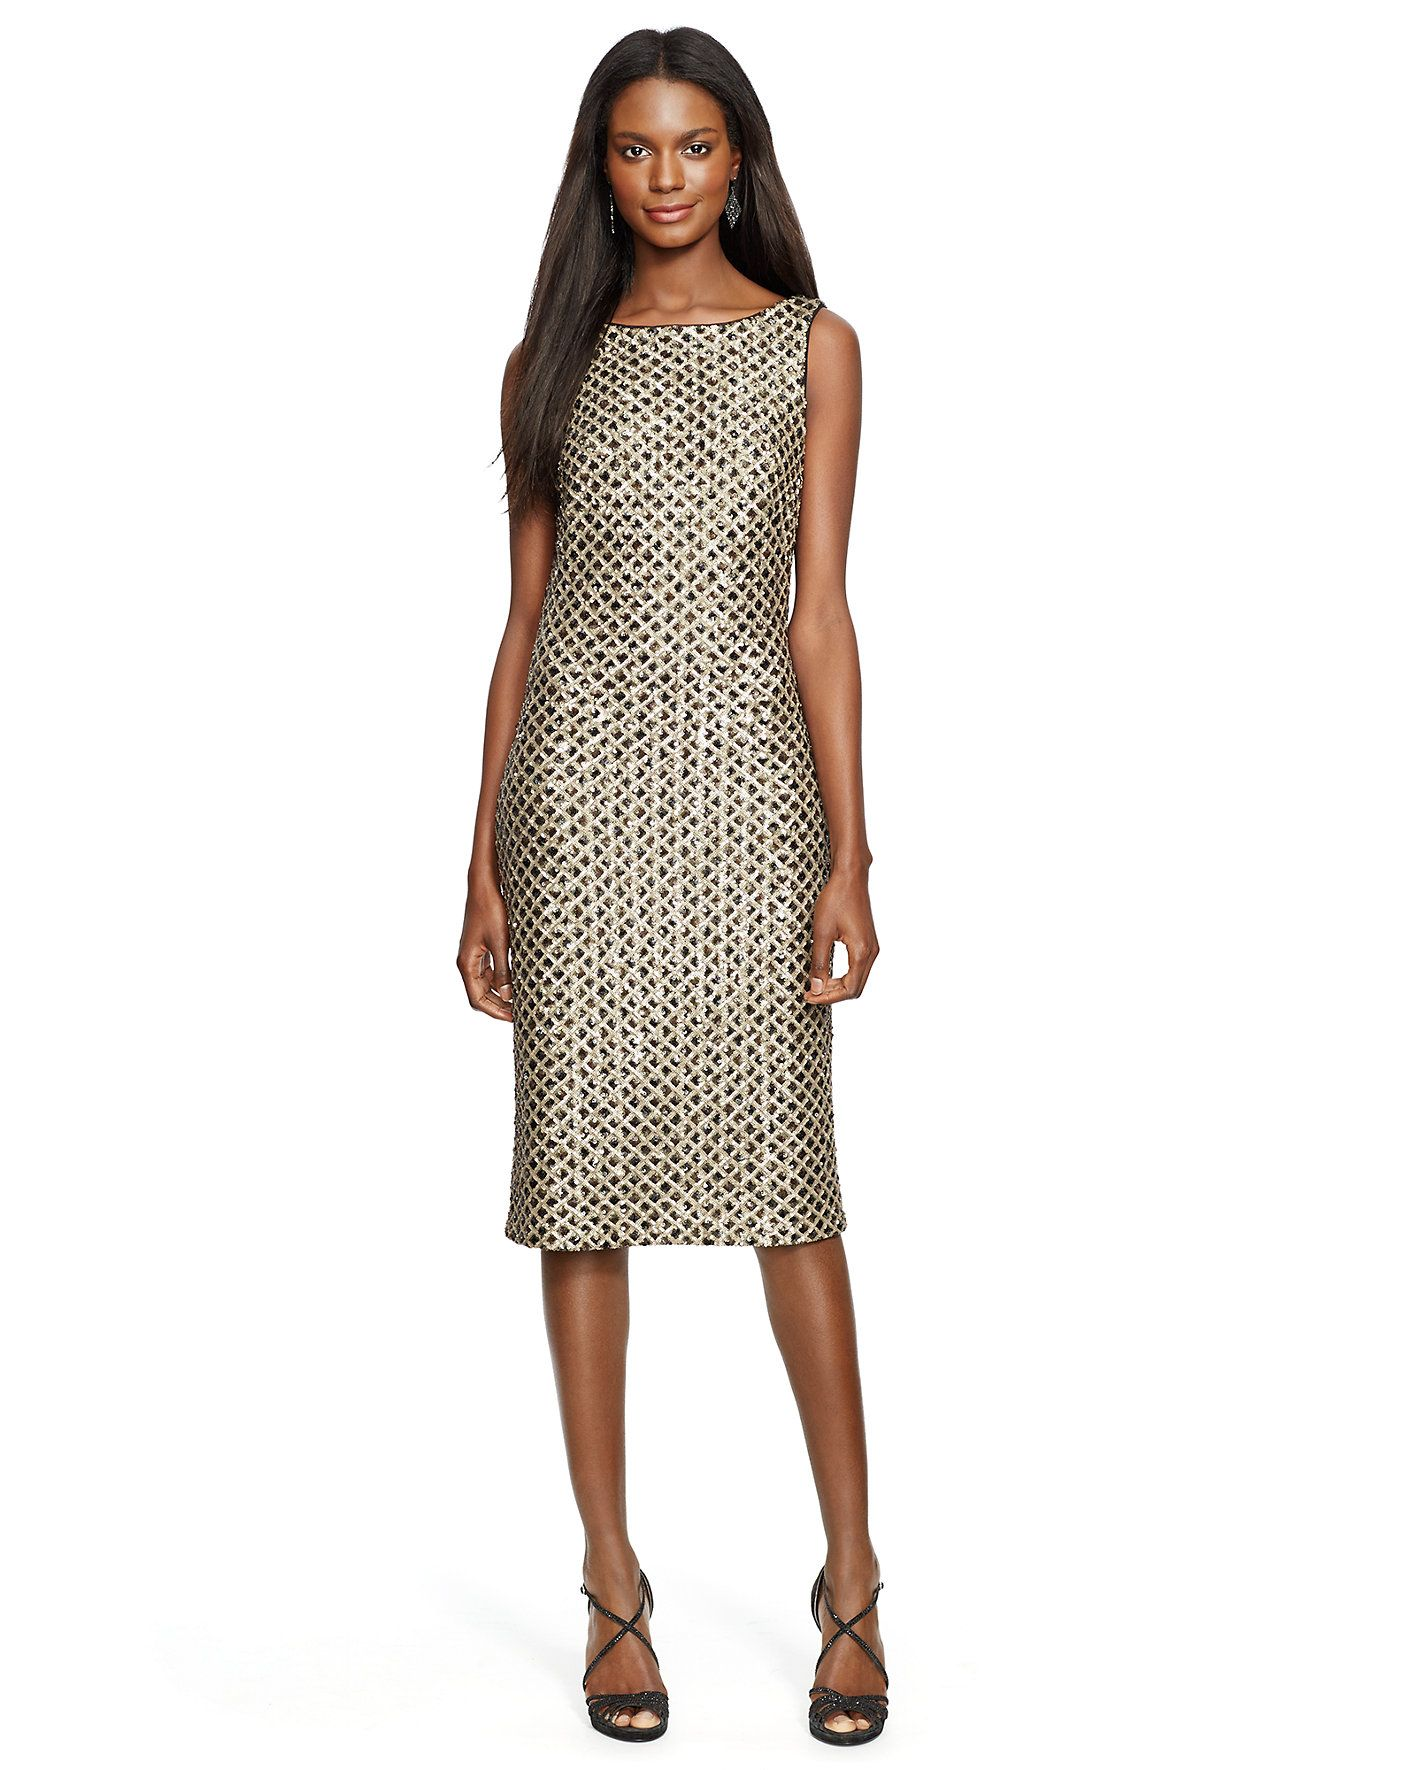 17d055a942a4 Sequined Sheath Dress - Mid Length Dresses Dresses - Ralph Lauren UK ...